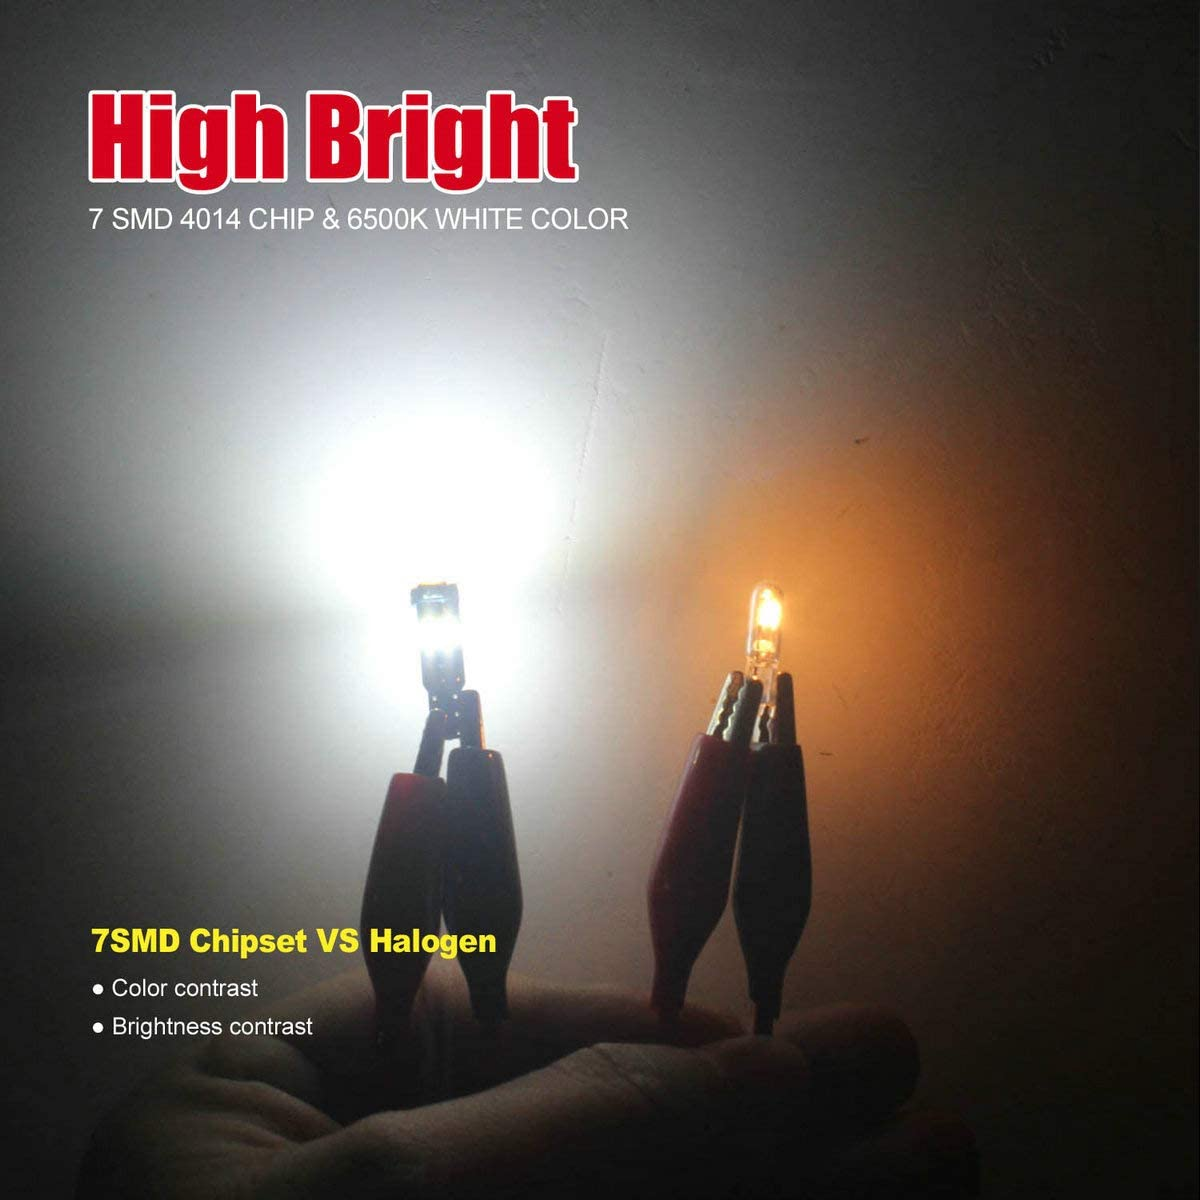 DODOFUN High Bright Red T5 37 74 PC74 PC37 LED Bulb with Twist Lock Socket for Dashboard Instrument Panel Gauge Cluster Light and Map Vanity Mirror Glove Box Indicator Light